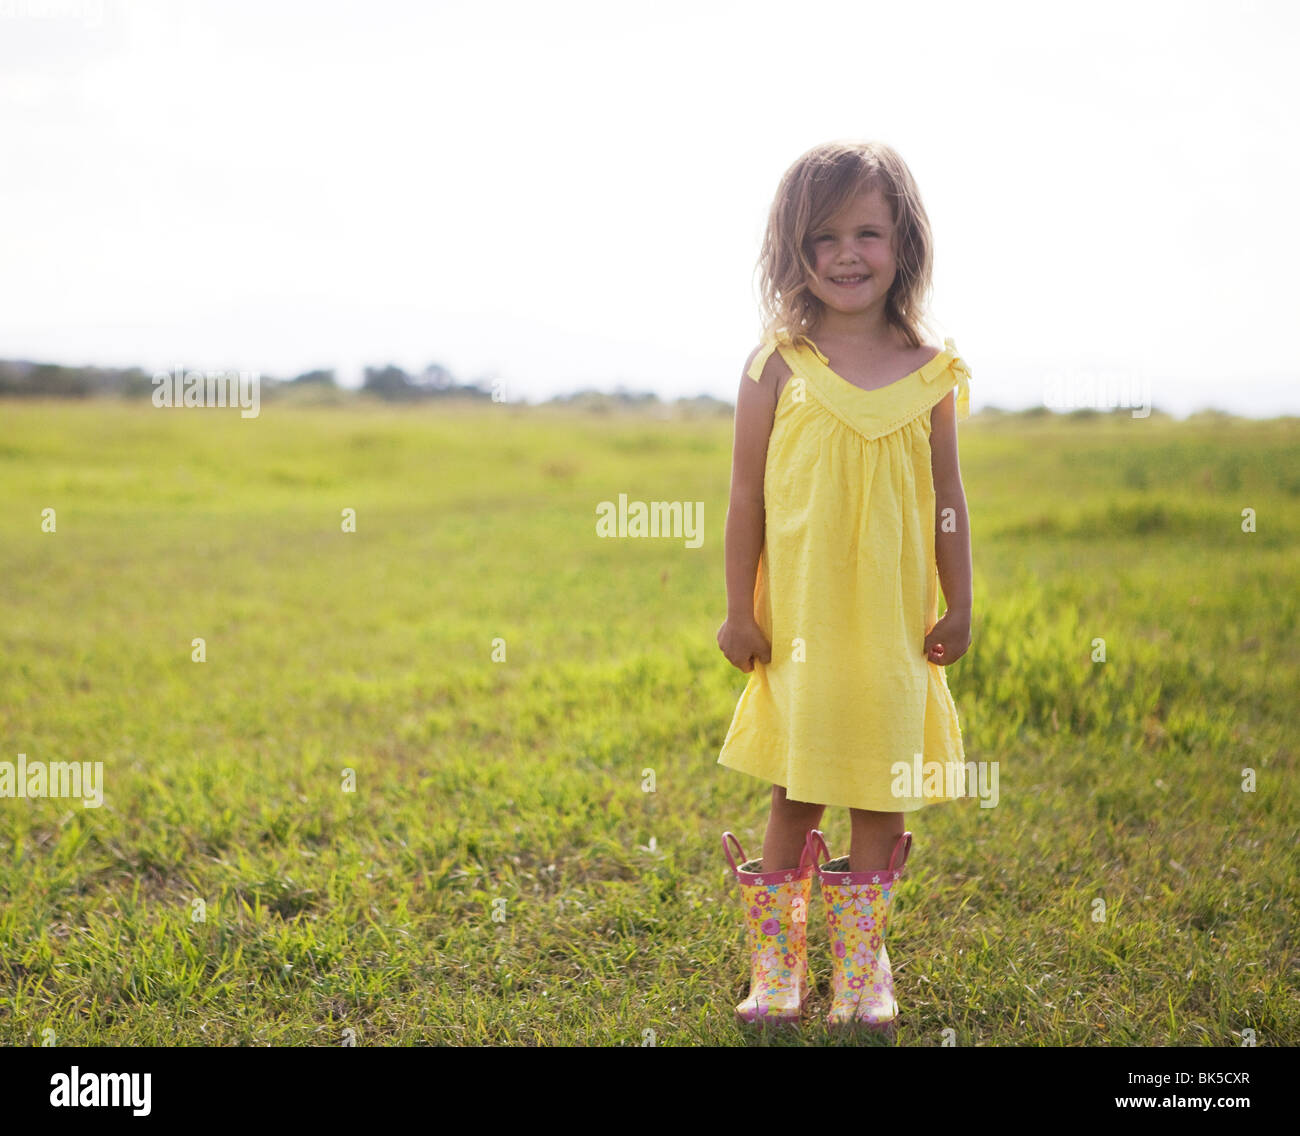 Young girl in yellow sundress and galoshes - Stock Image